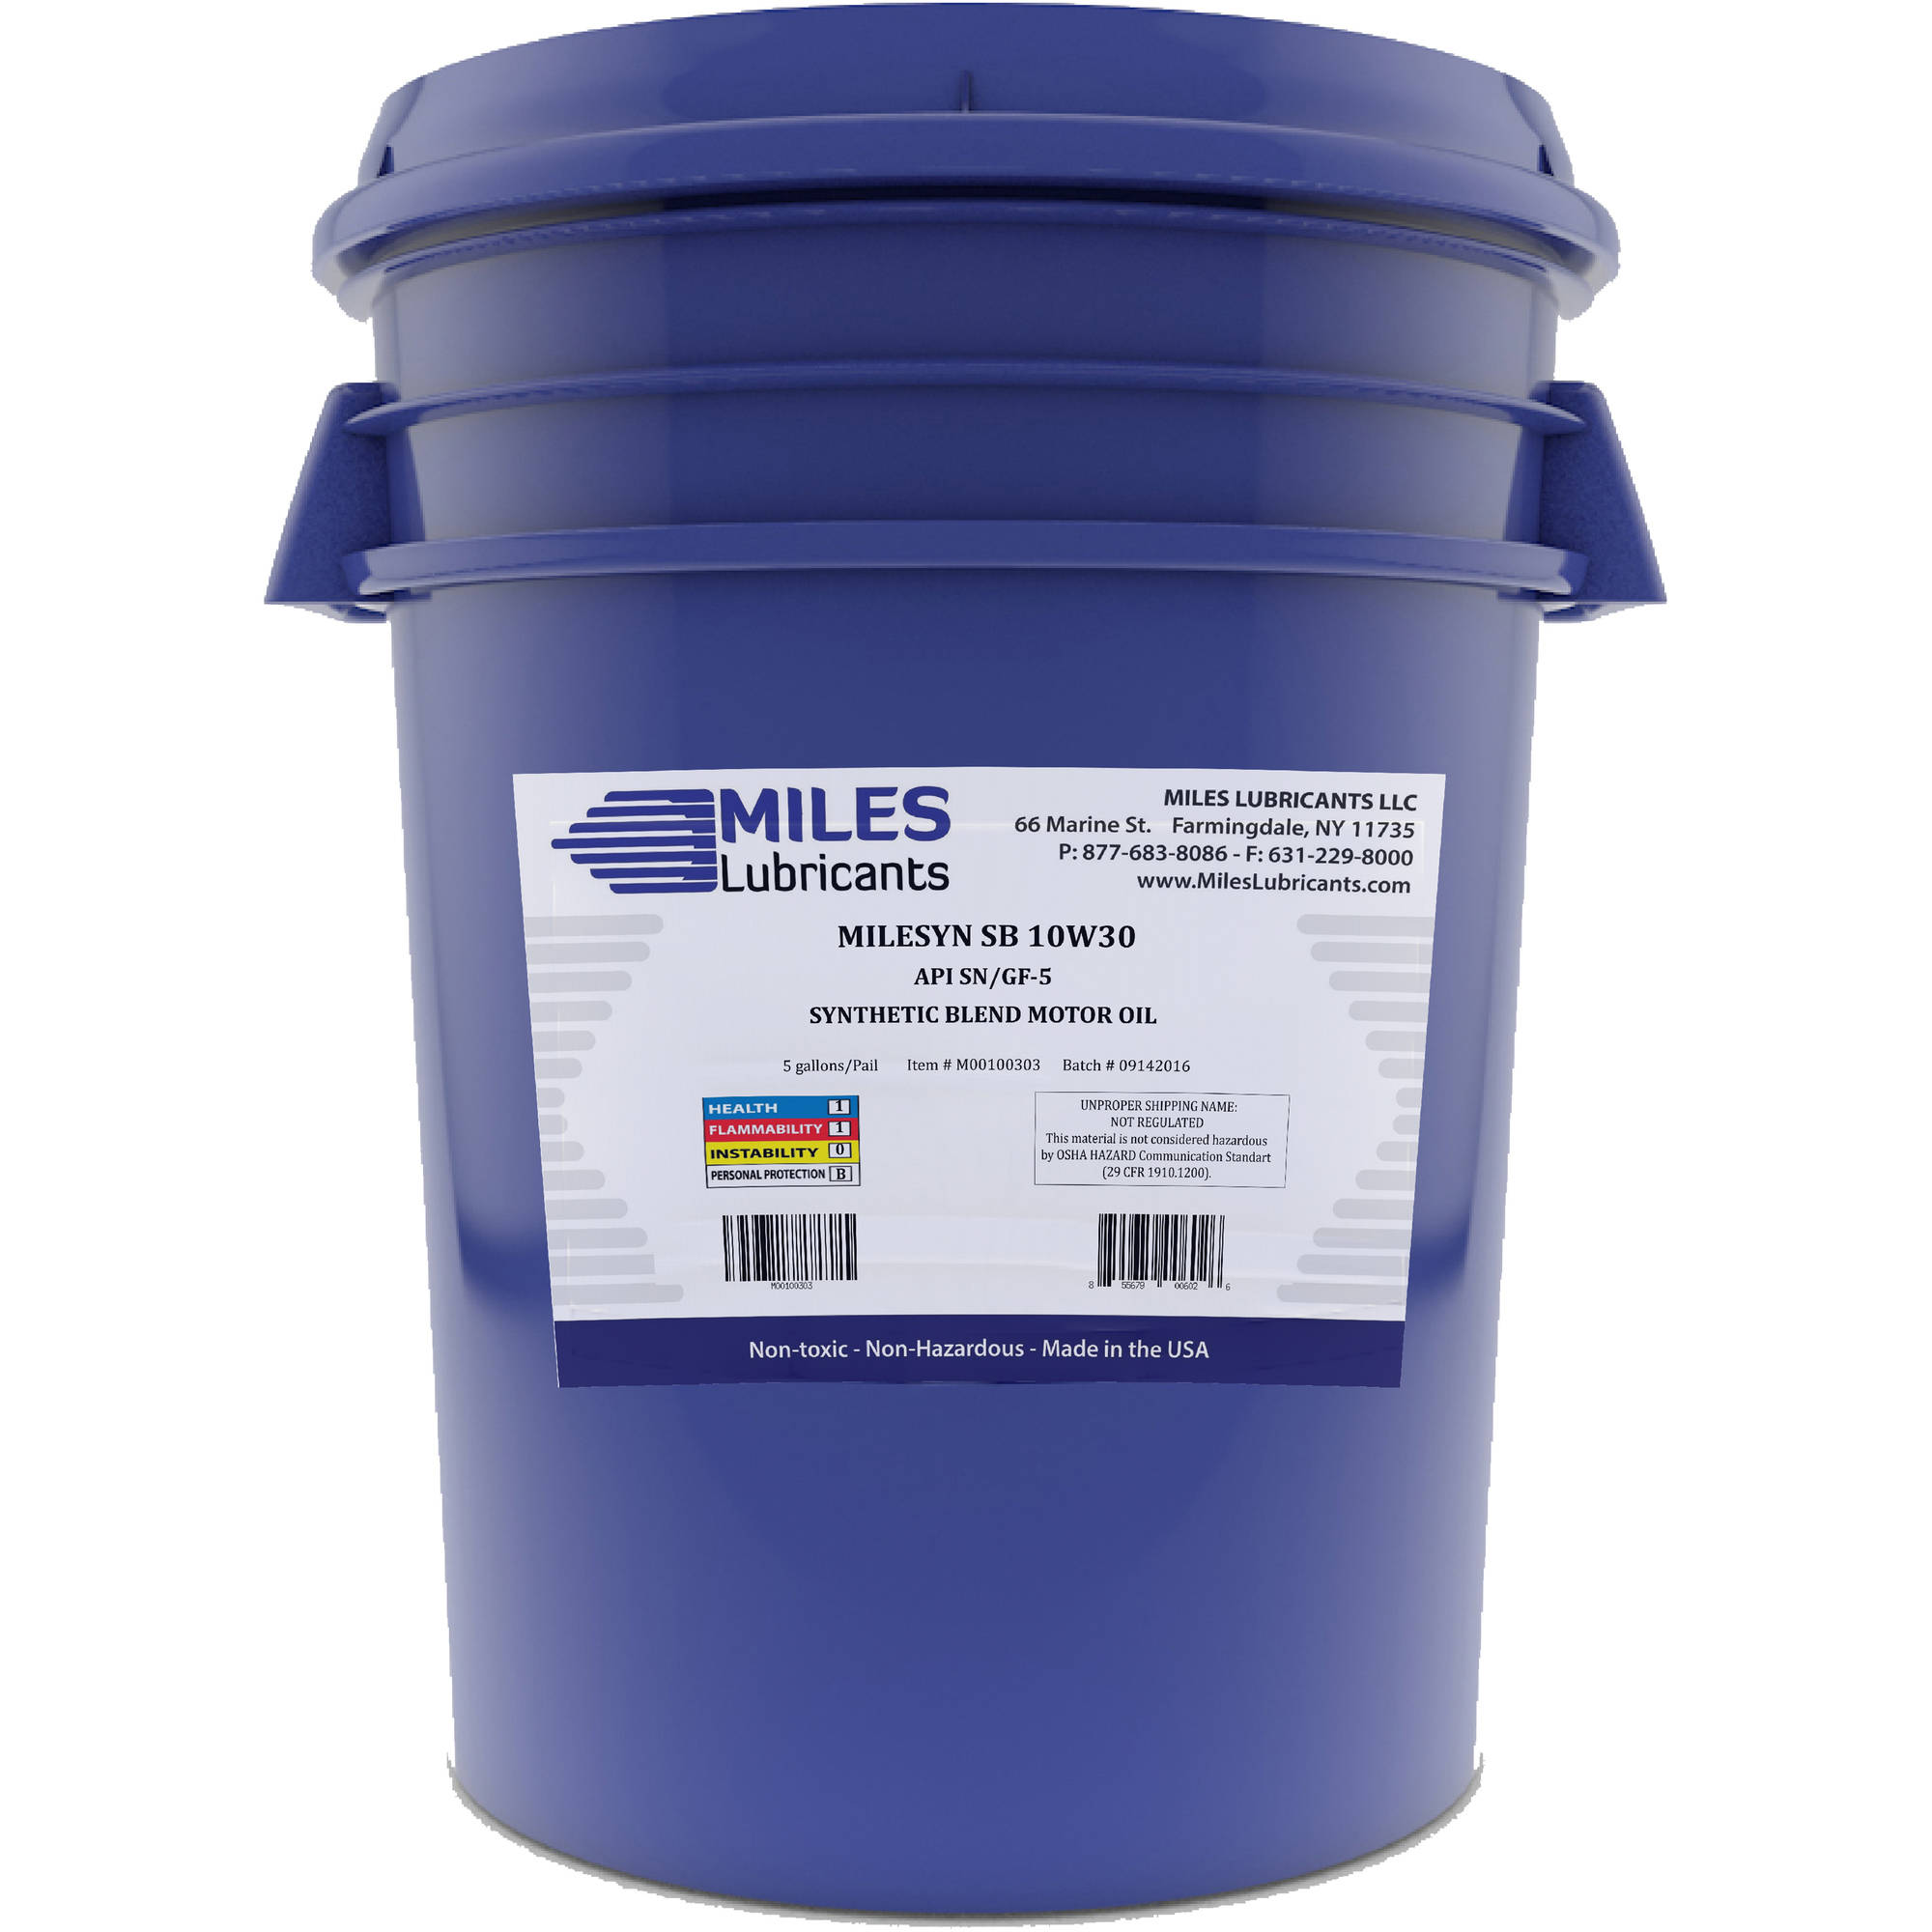 Milesyn SB 10W30 API GF-5/SN, Synthetic Blend Motor Oil, 5-Gallon Pail